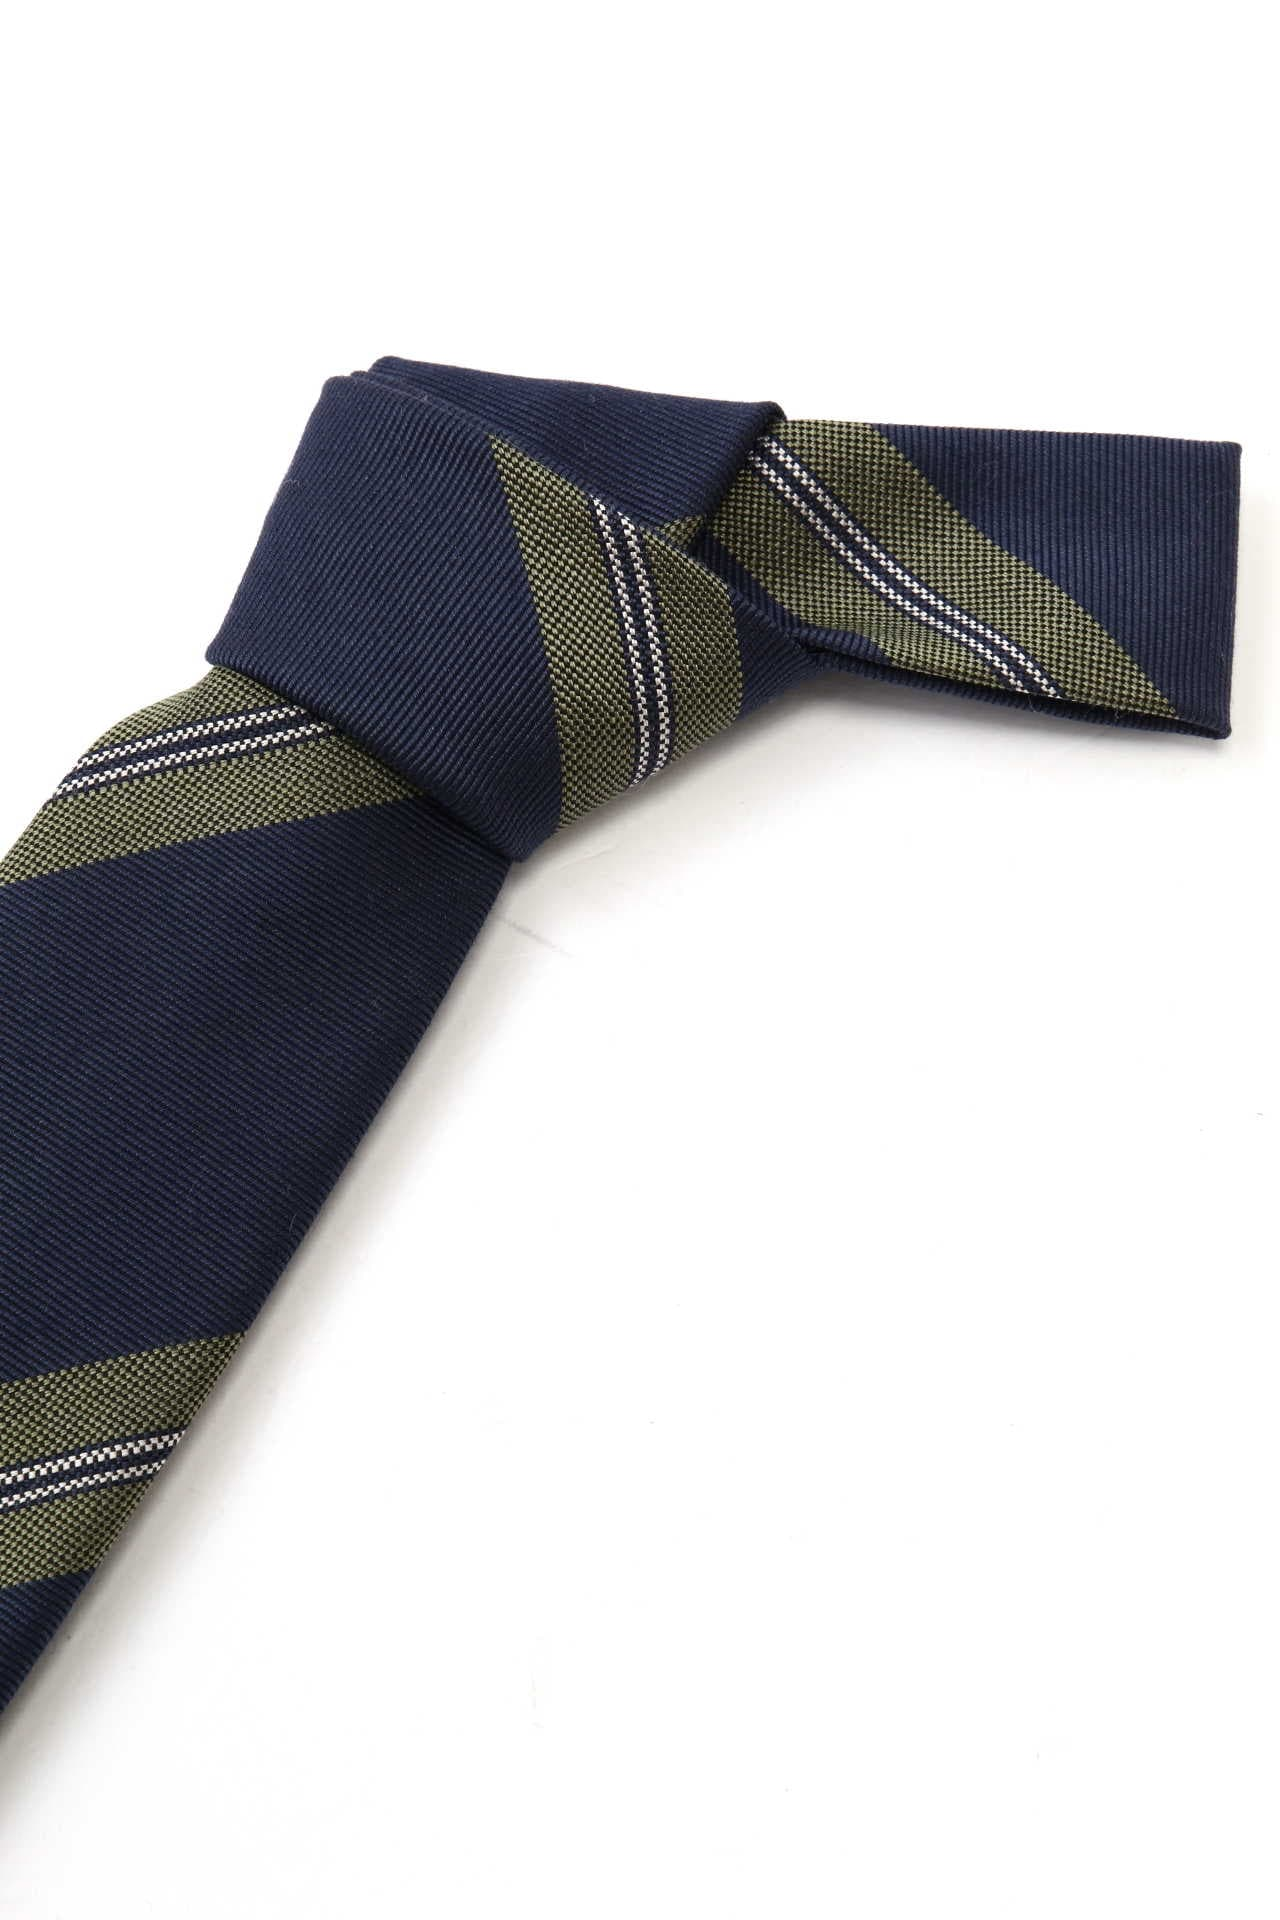 ALTERNATE STRIPE TIE3